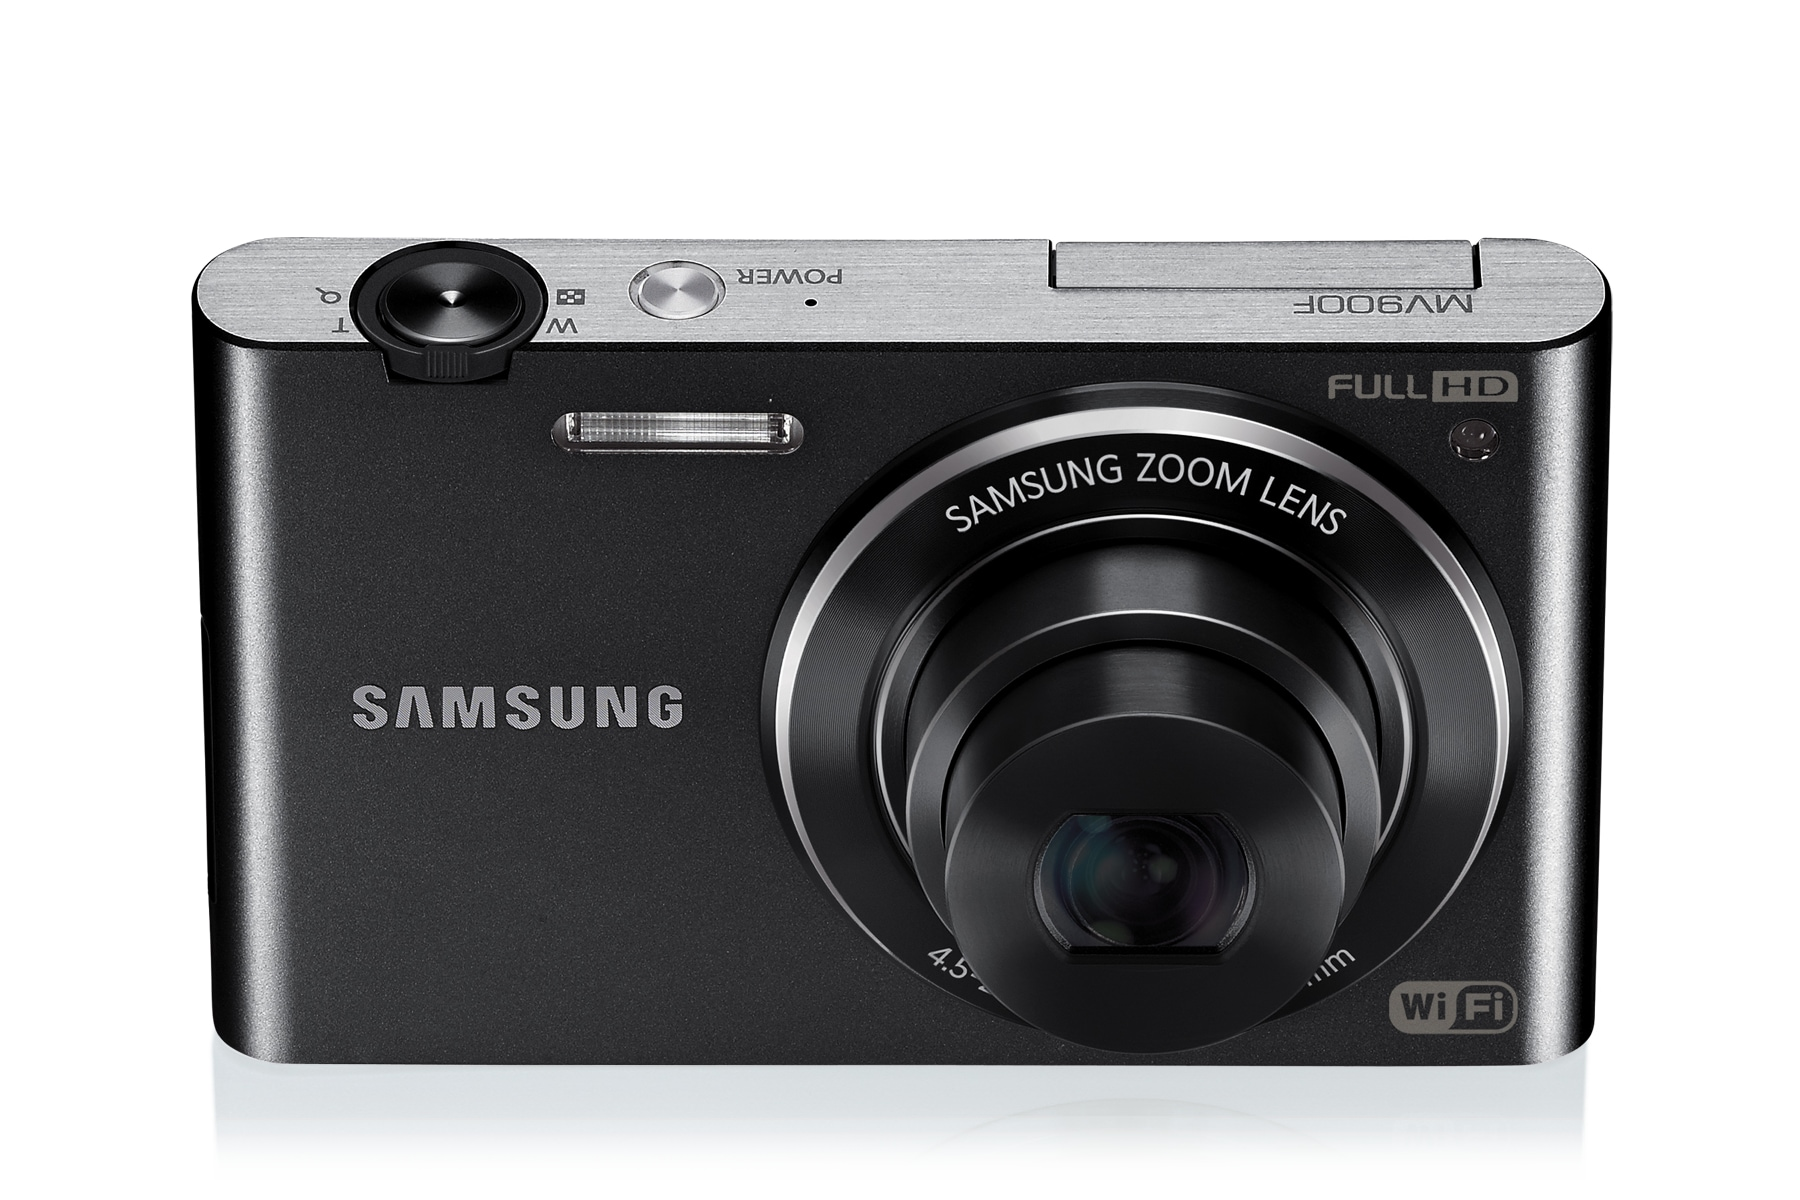 SAMSUNG MV900F 27 Dynamic black